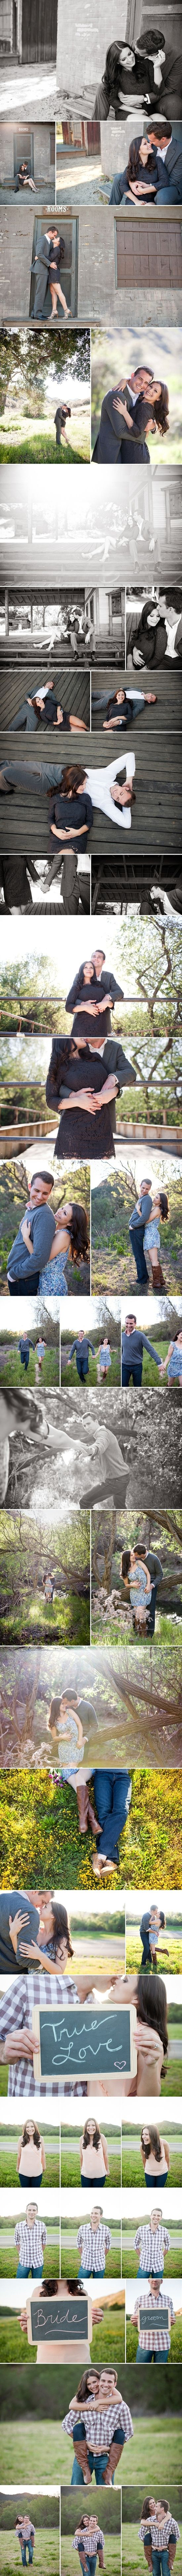 engagement shoot...really like the variety of perspectives... lovely